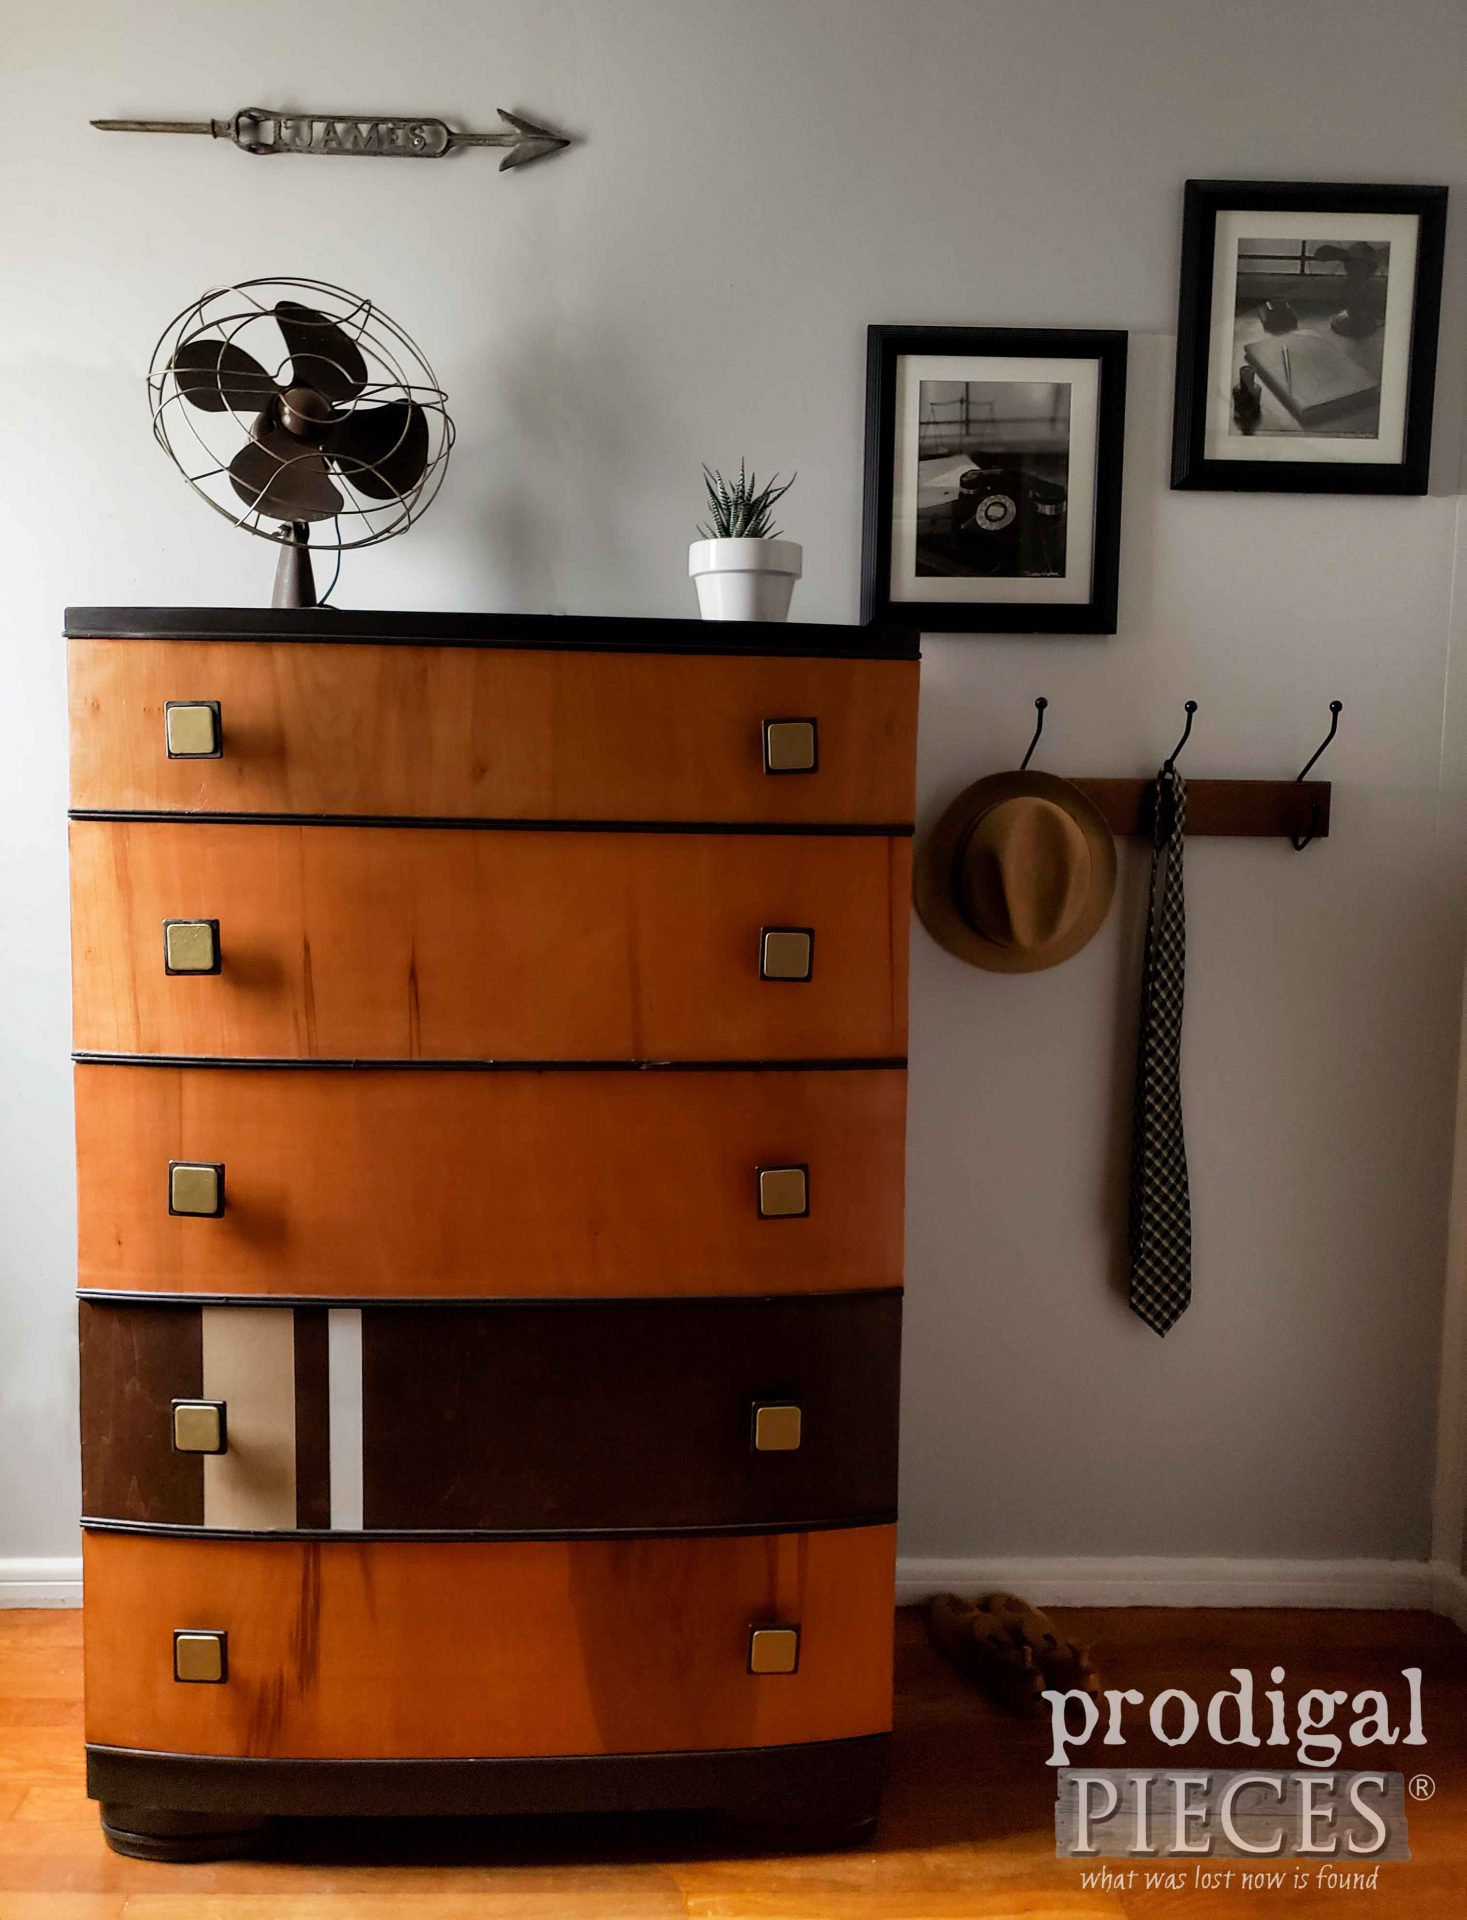 Vintage Art Deco Chest of Drawers with Masculine Feel by Larissa of Prodigal Pieces | prodigalpieces.com #prodigalpieces #furniture #home #homedecor